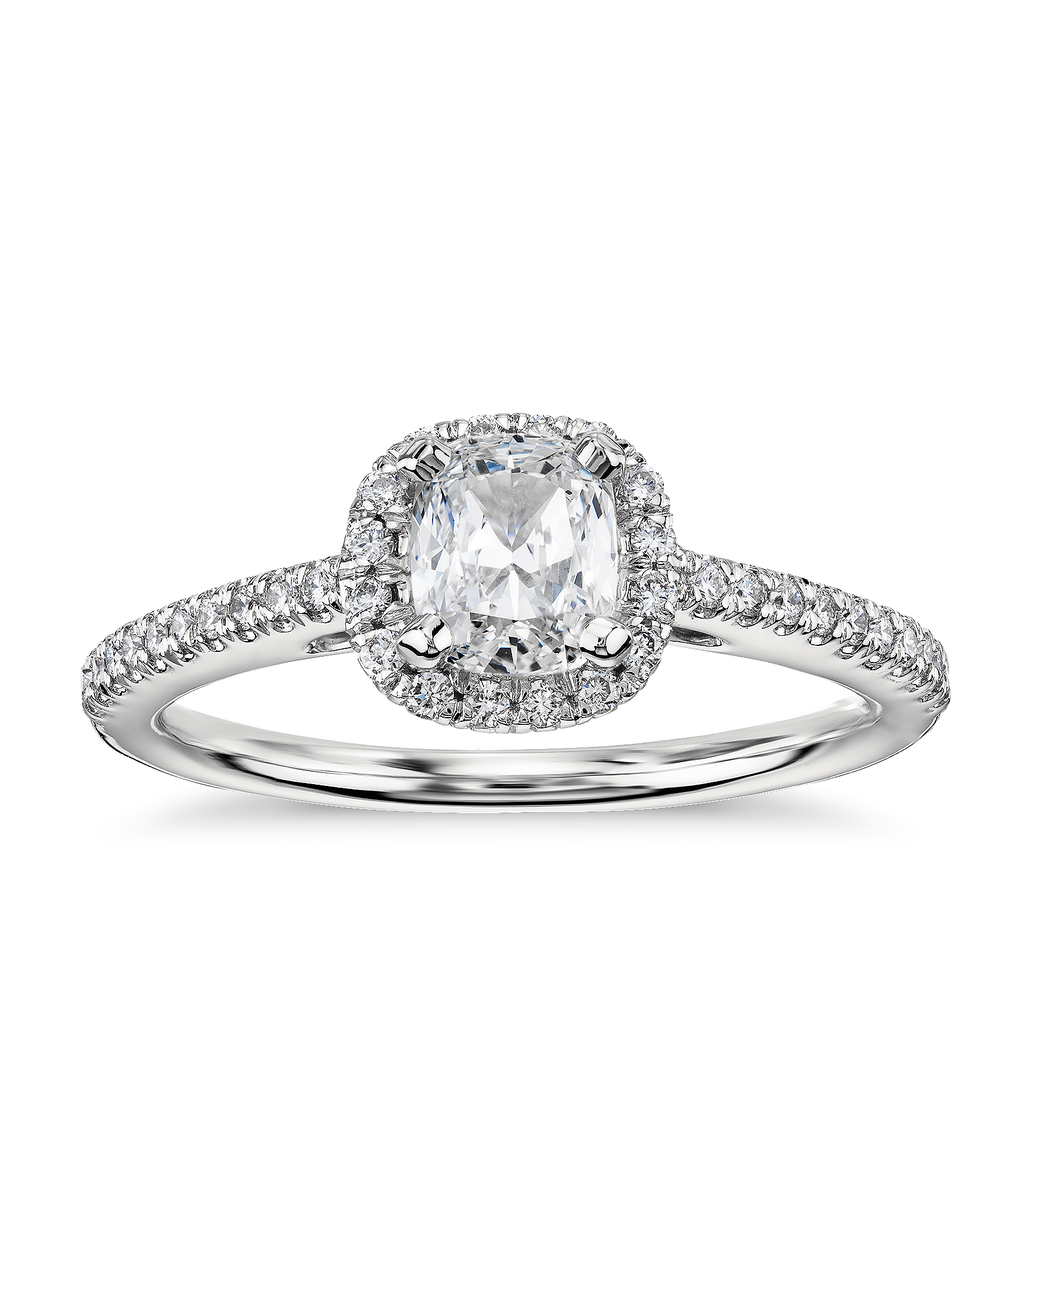 Blue Nile Cushion Cut Diamond Engagement Ring in Platinum